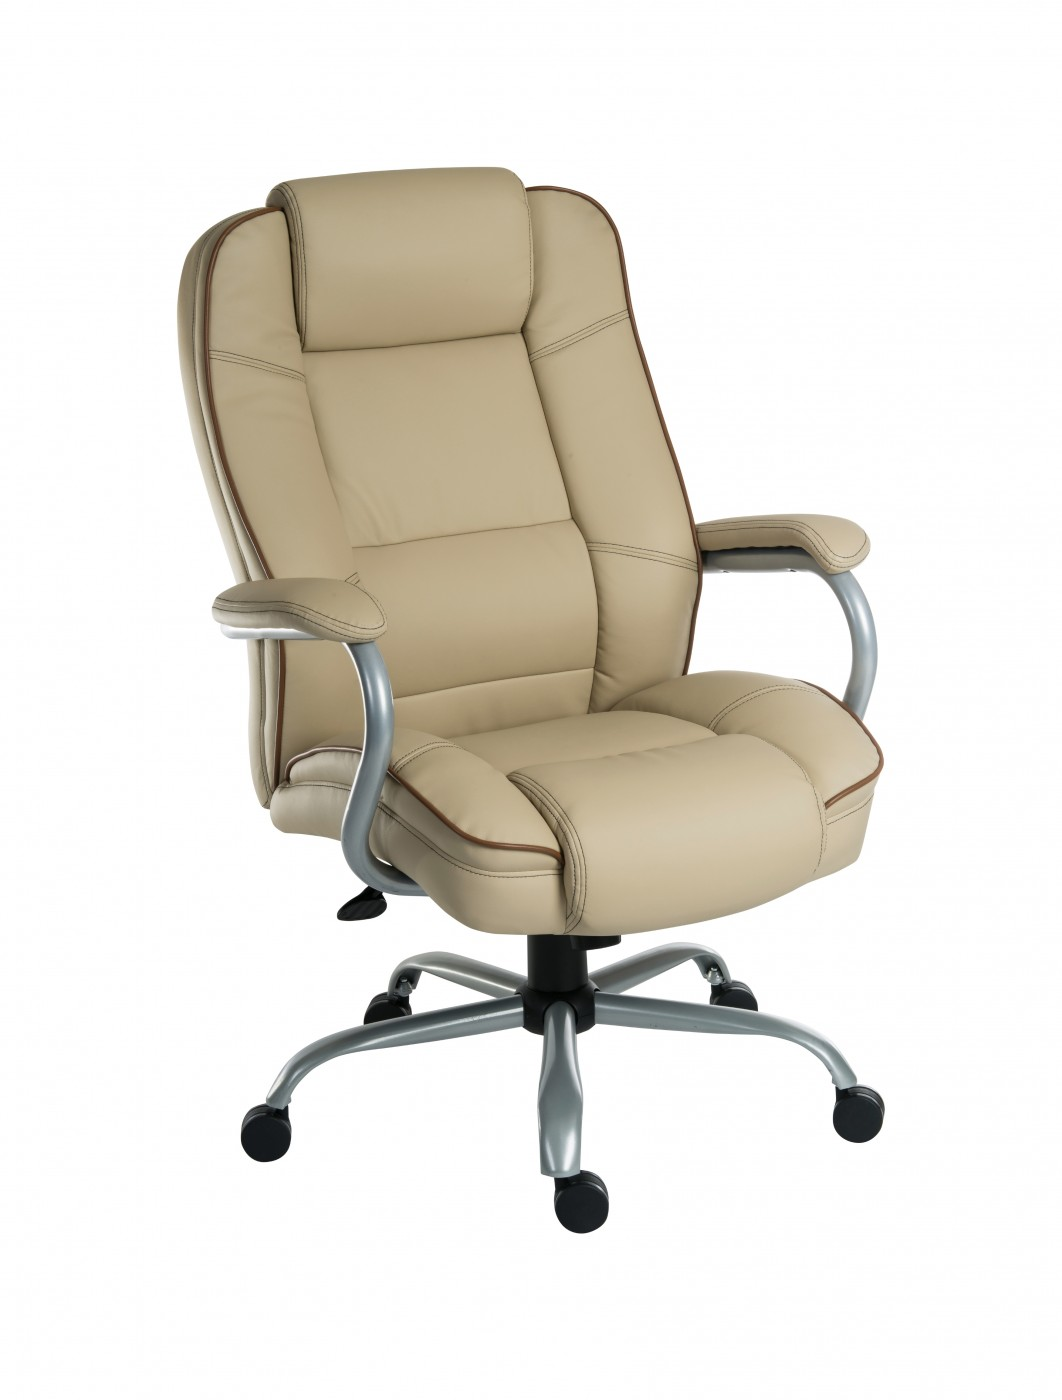 Executive Chair Teknik Goliath Duo Heavy Duty Office Chair 6925cr 121